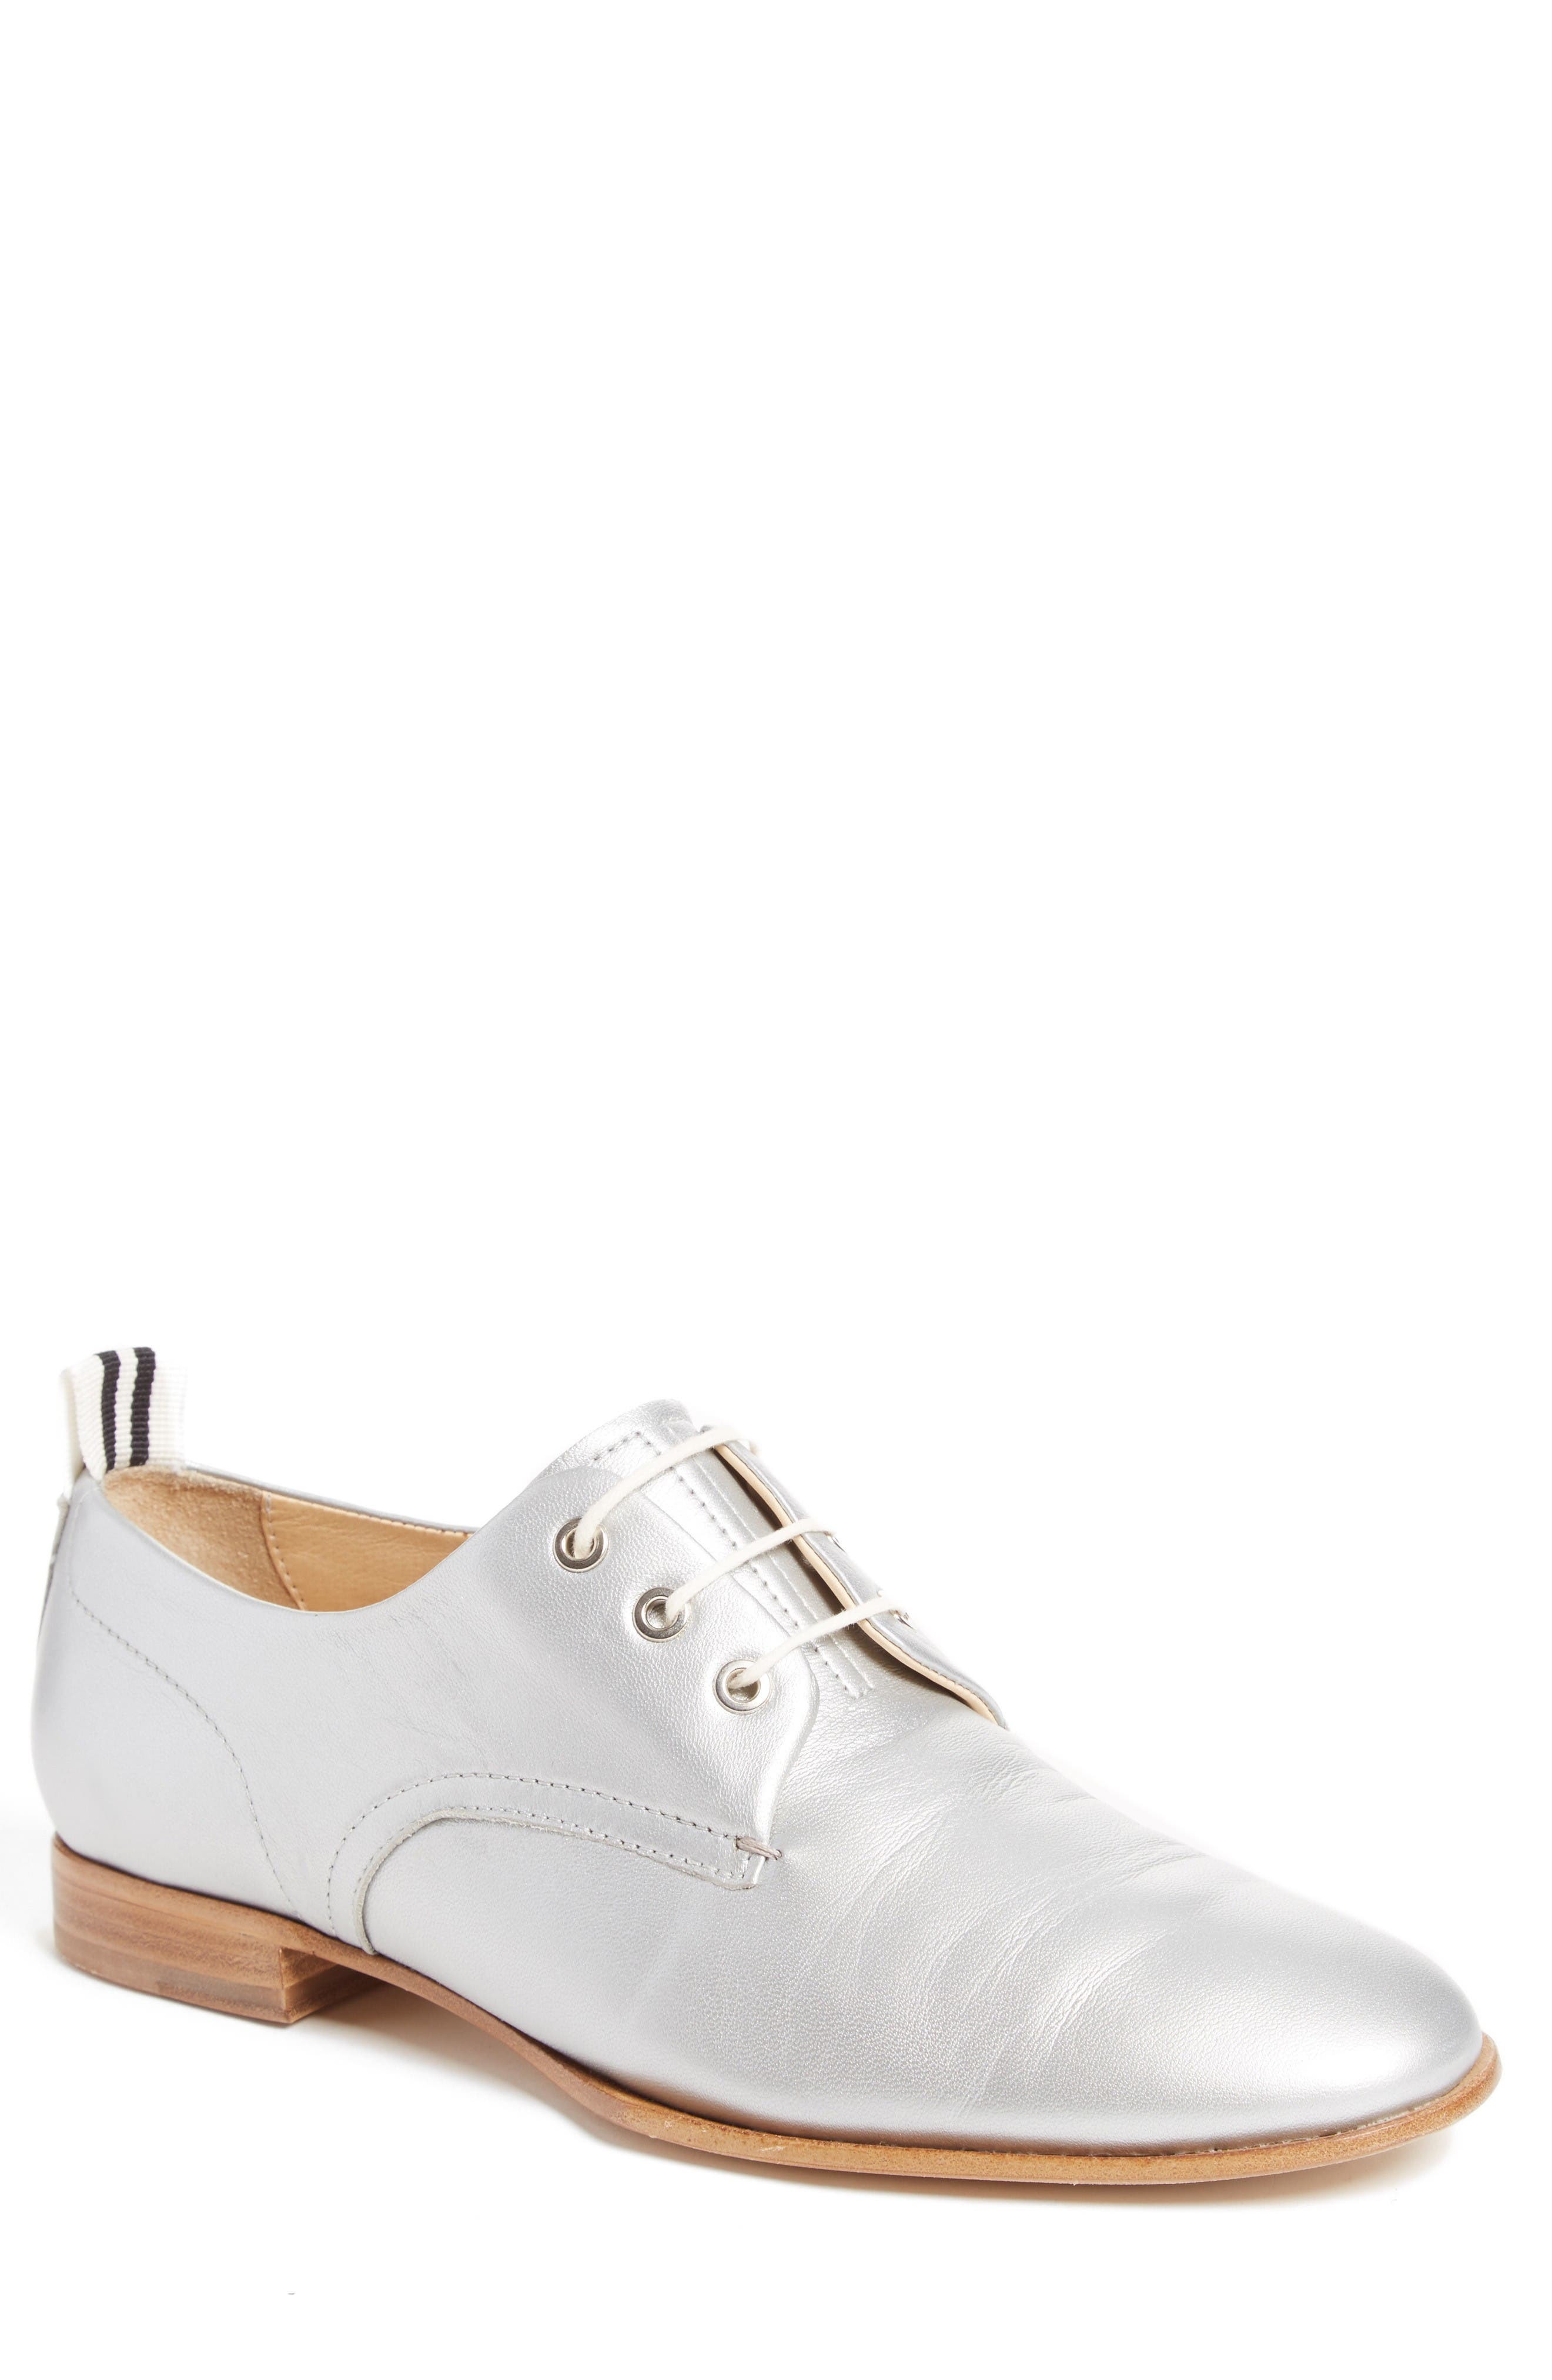 Alternate Image 1 Selected - rag & bone Audrey Oxford (Women)